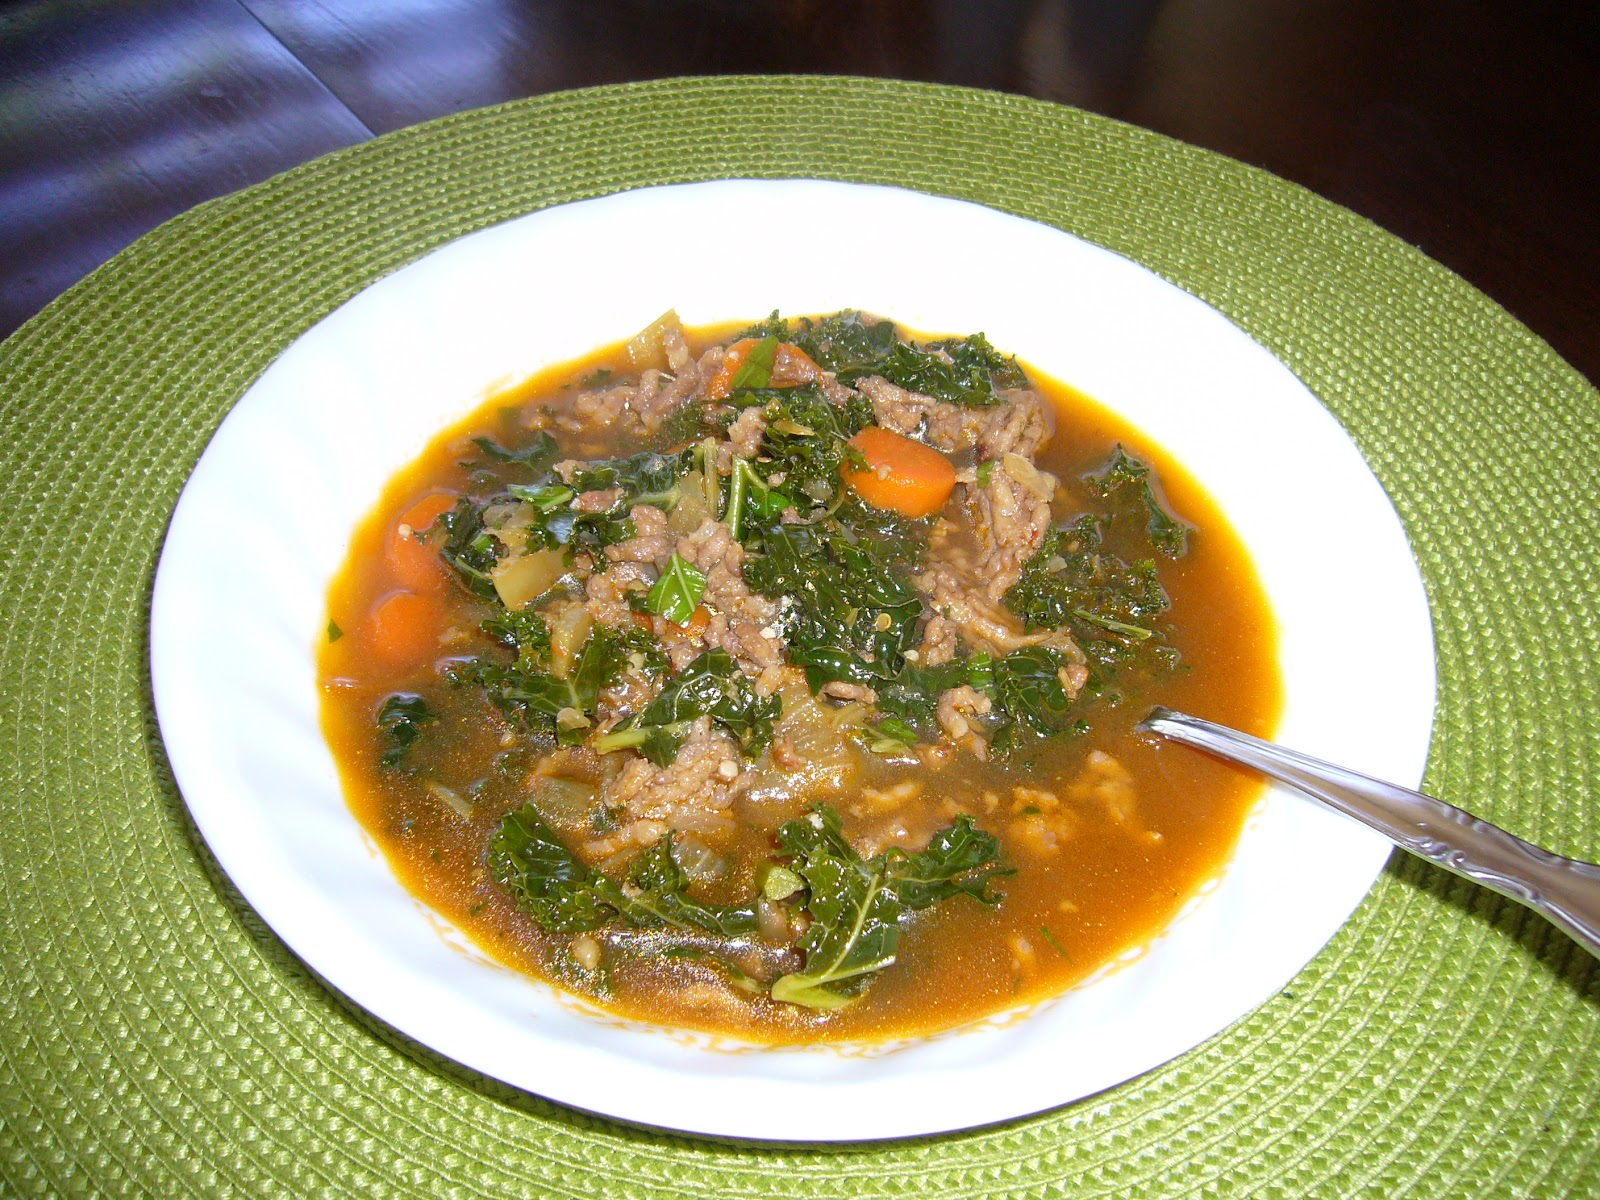 Adventures in Food: Italian Sausage and Kale soup